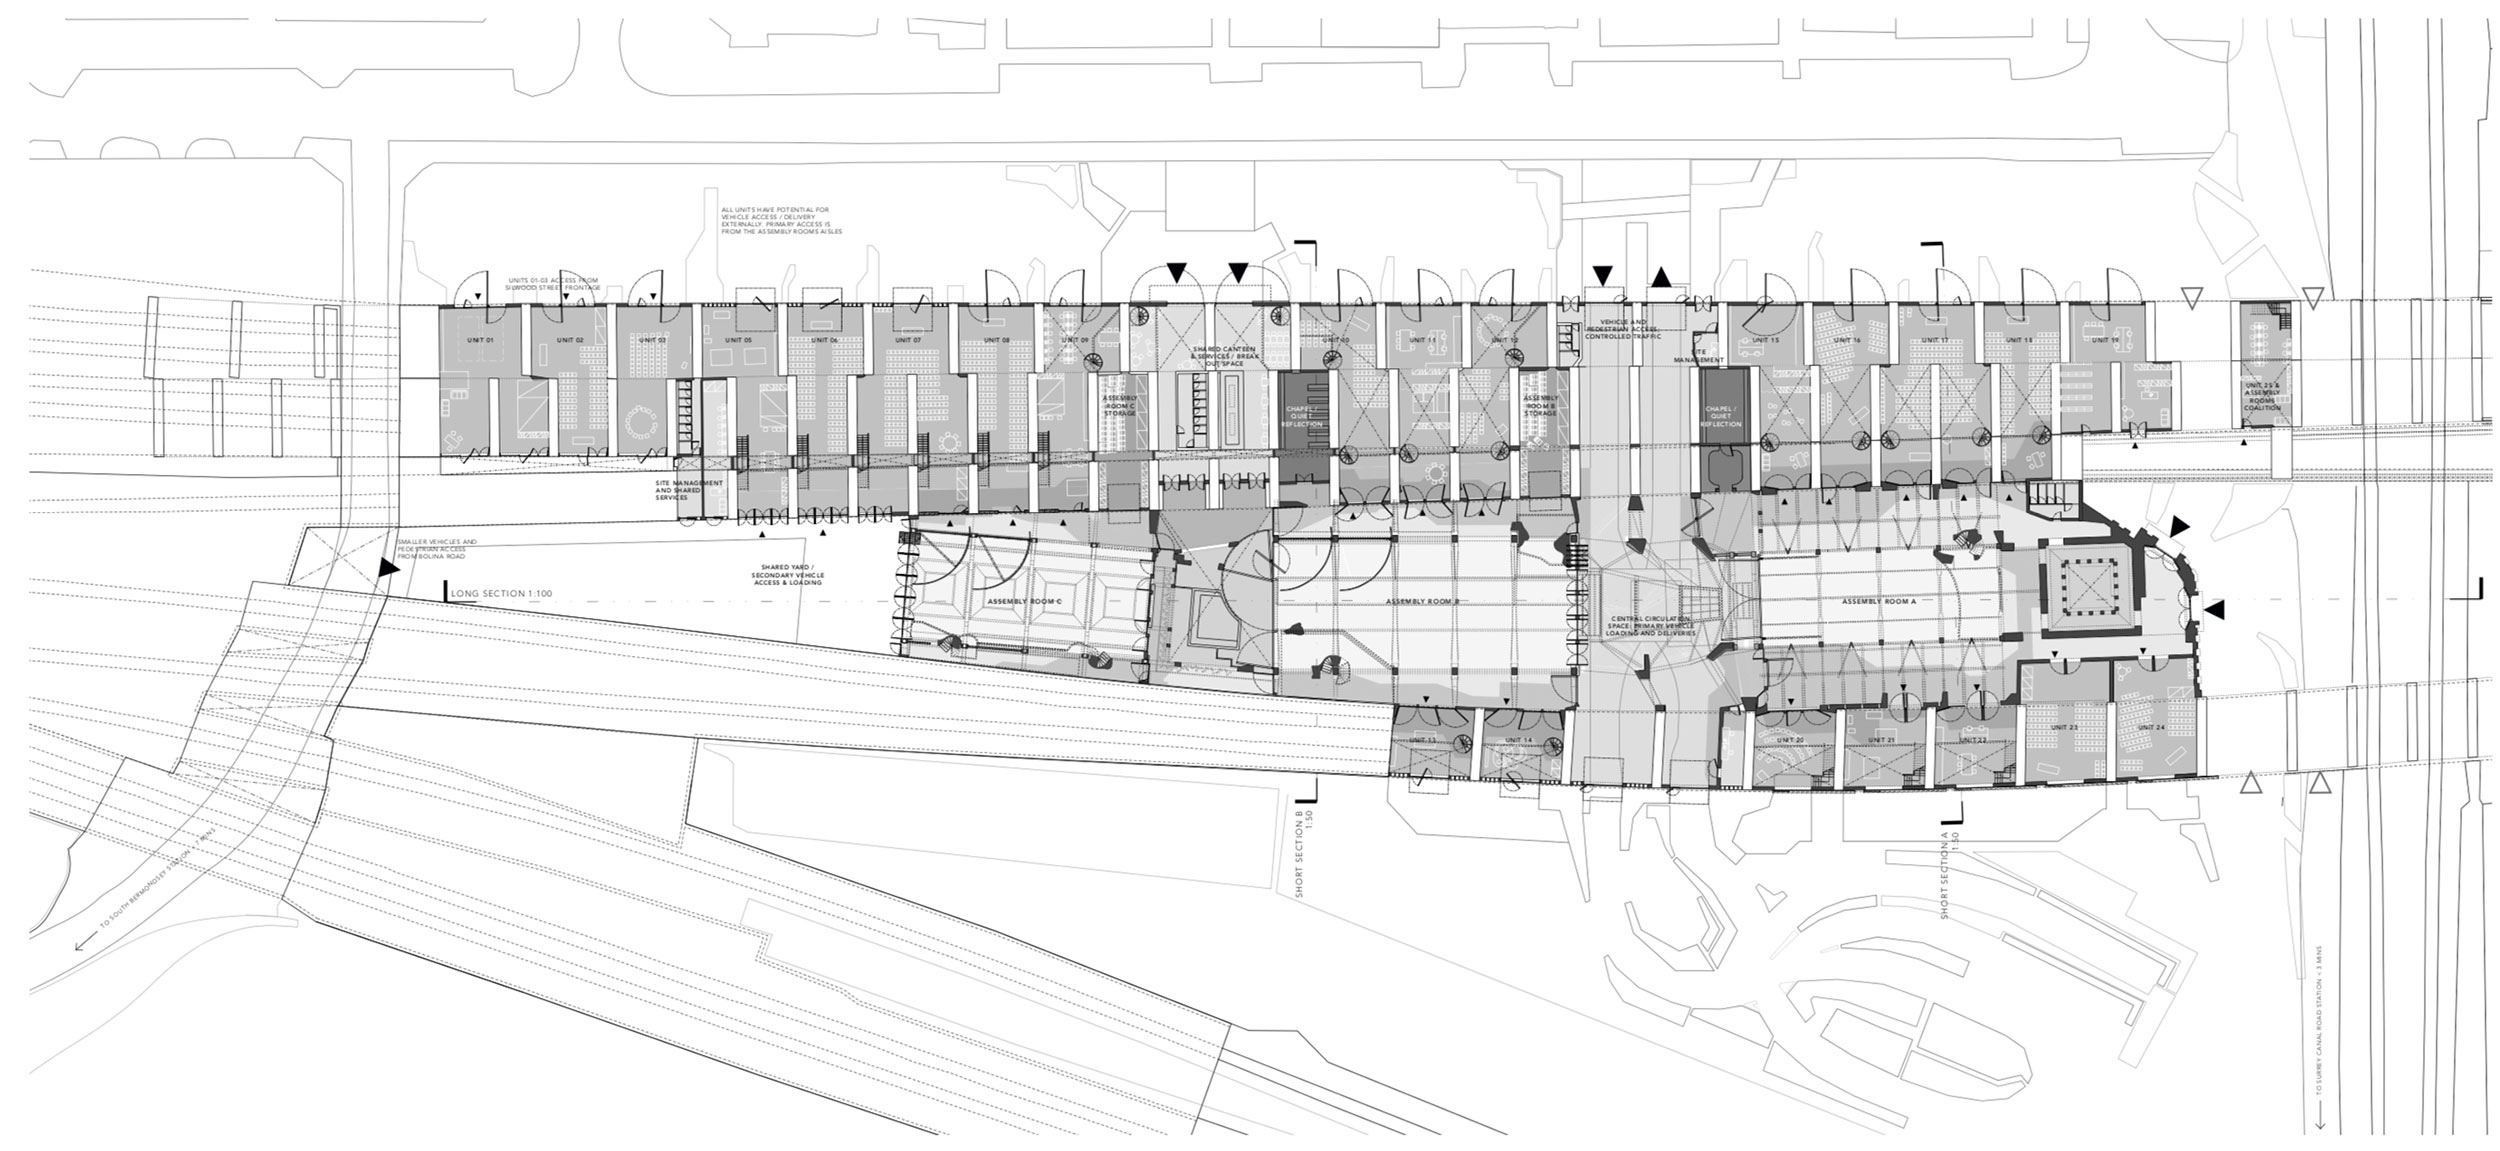 Ground floor plan showing indicative inhabitation of the viaduct units  by businesses and worship groups.